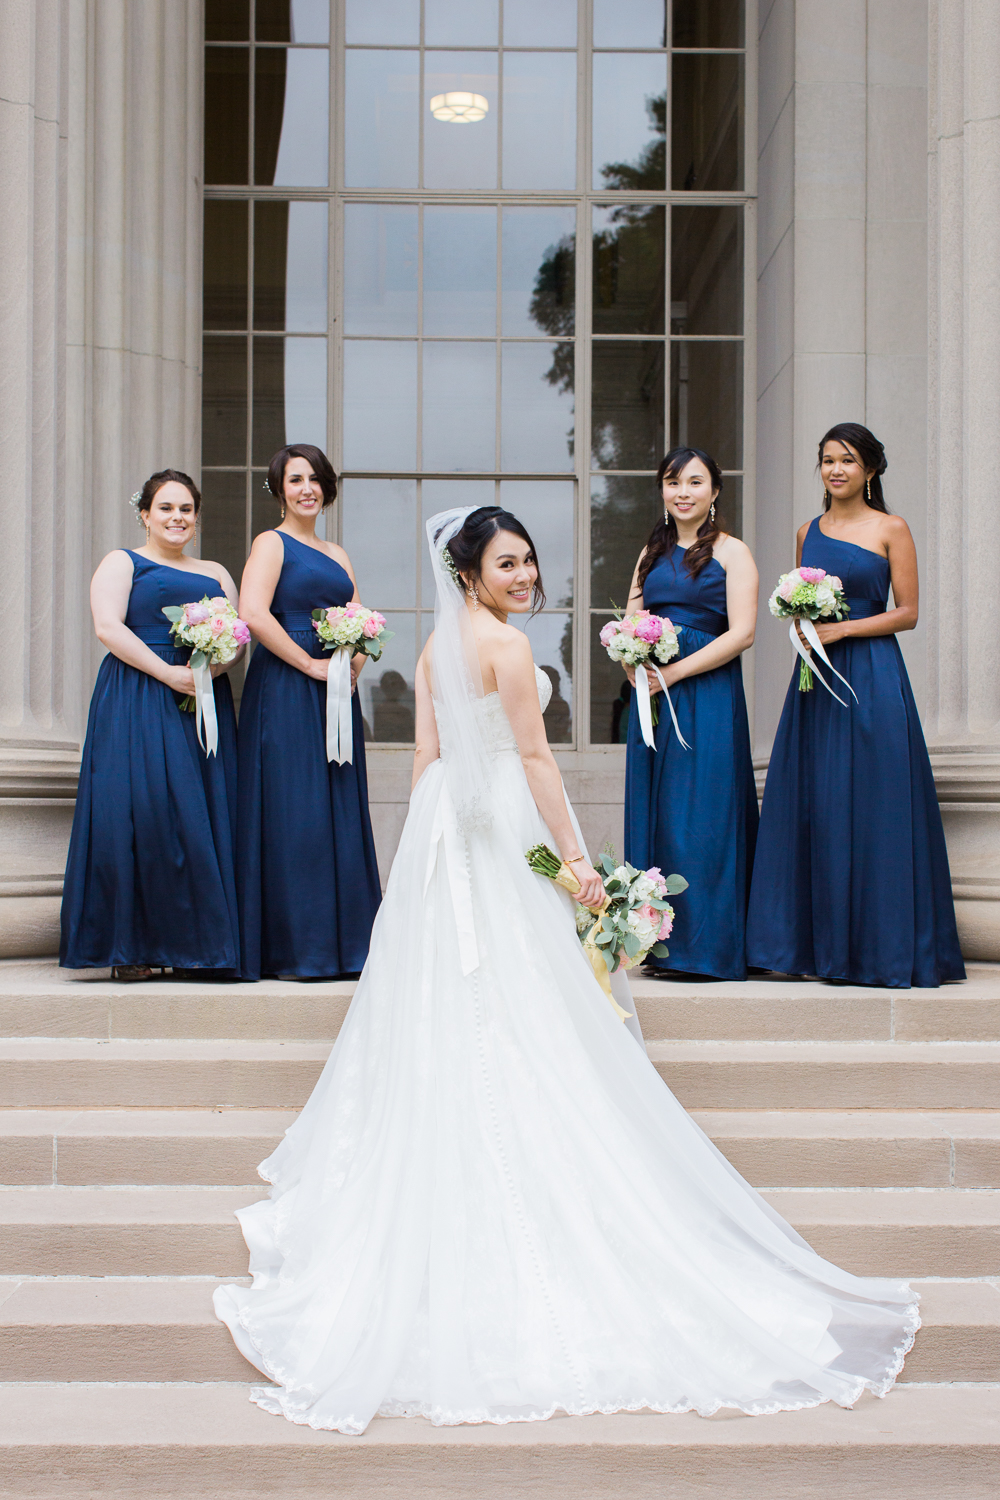 hyatt-regency-cambridge-wedding-photography-60